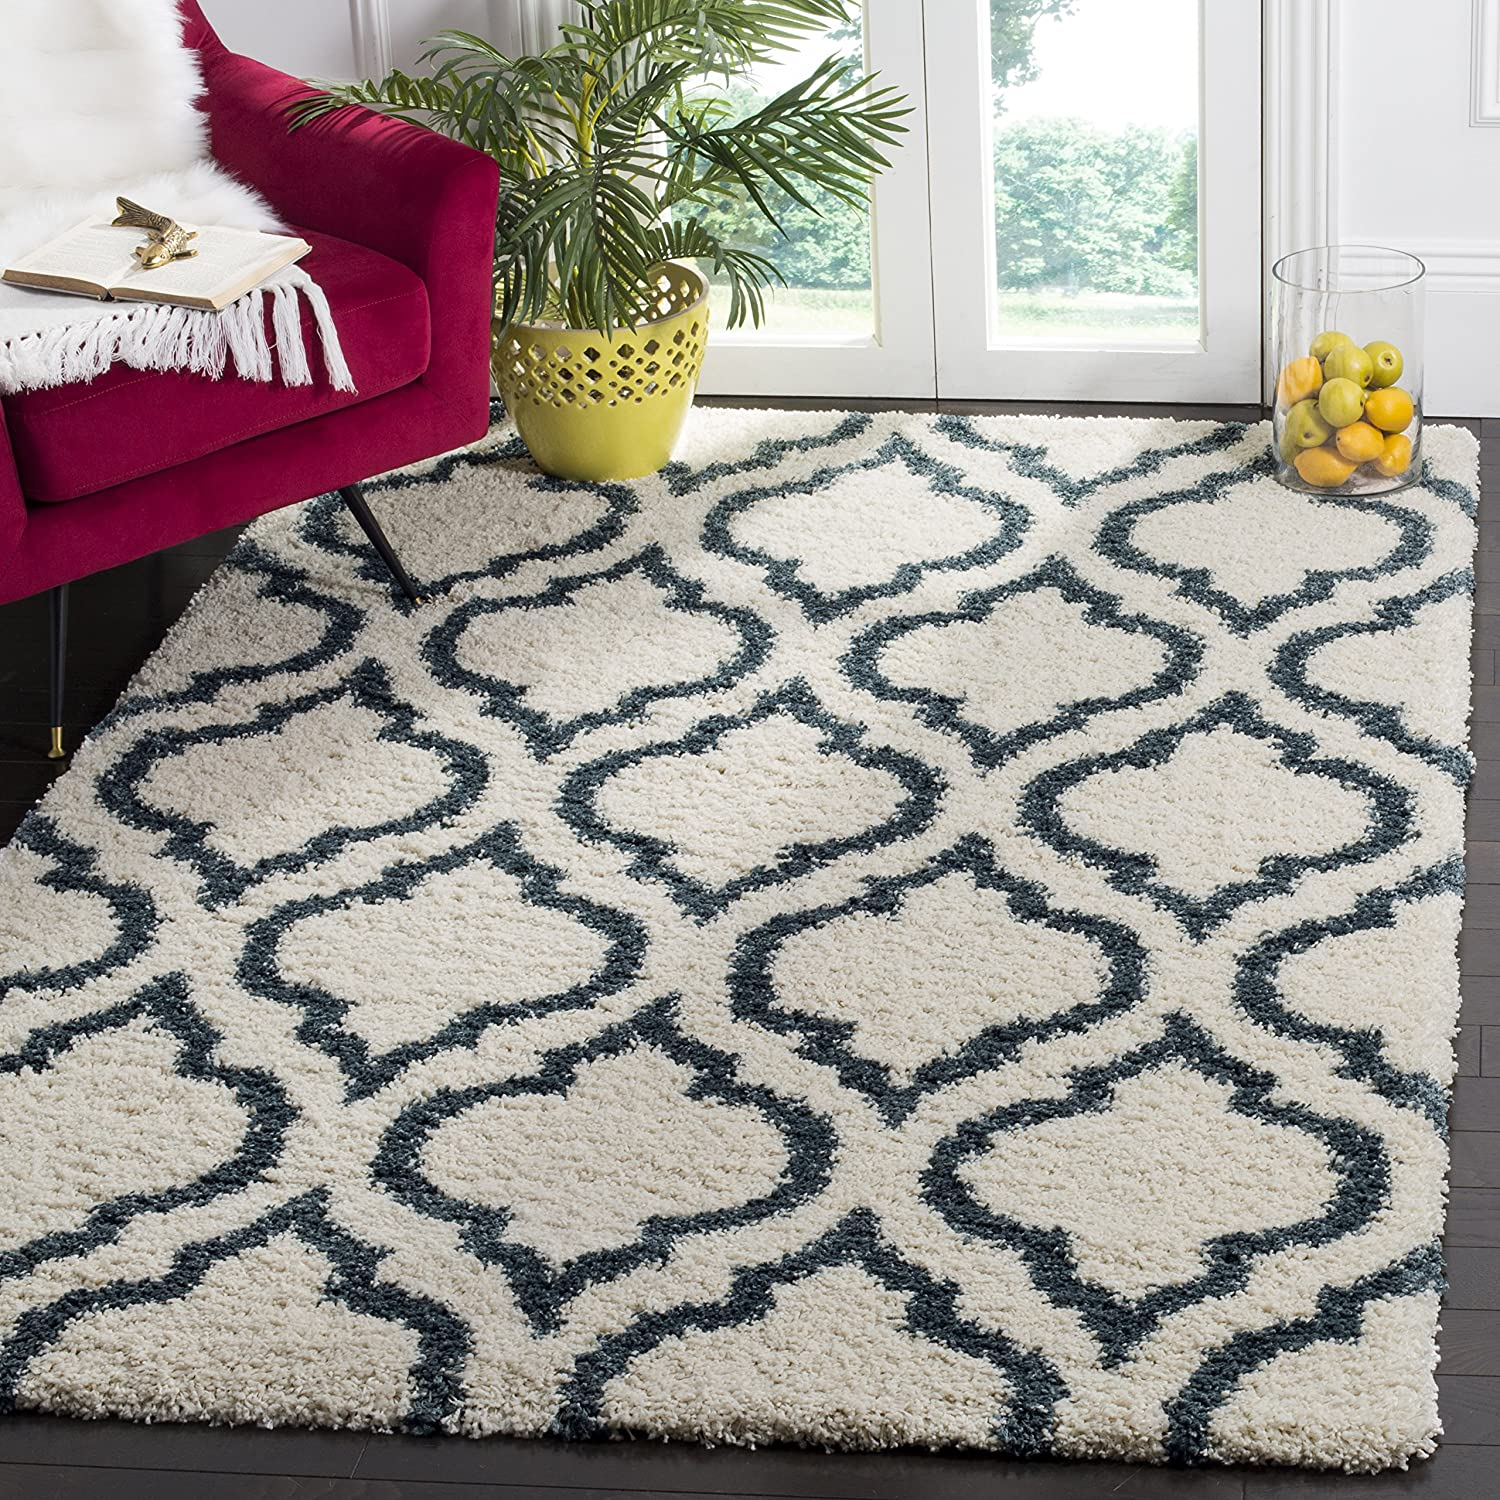 Safavieh Hudson Shag Collection SGH284T Moroccan Geometric 2-inch Thick Area Rug, 9' x 12', Ivory/Slate Blue